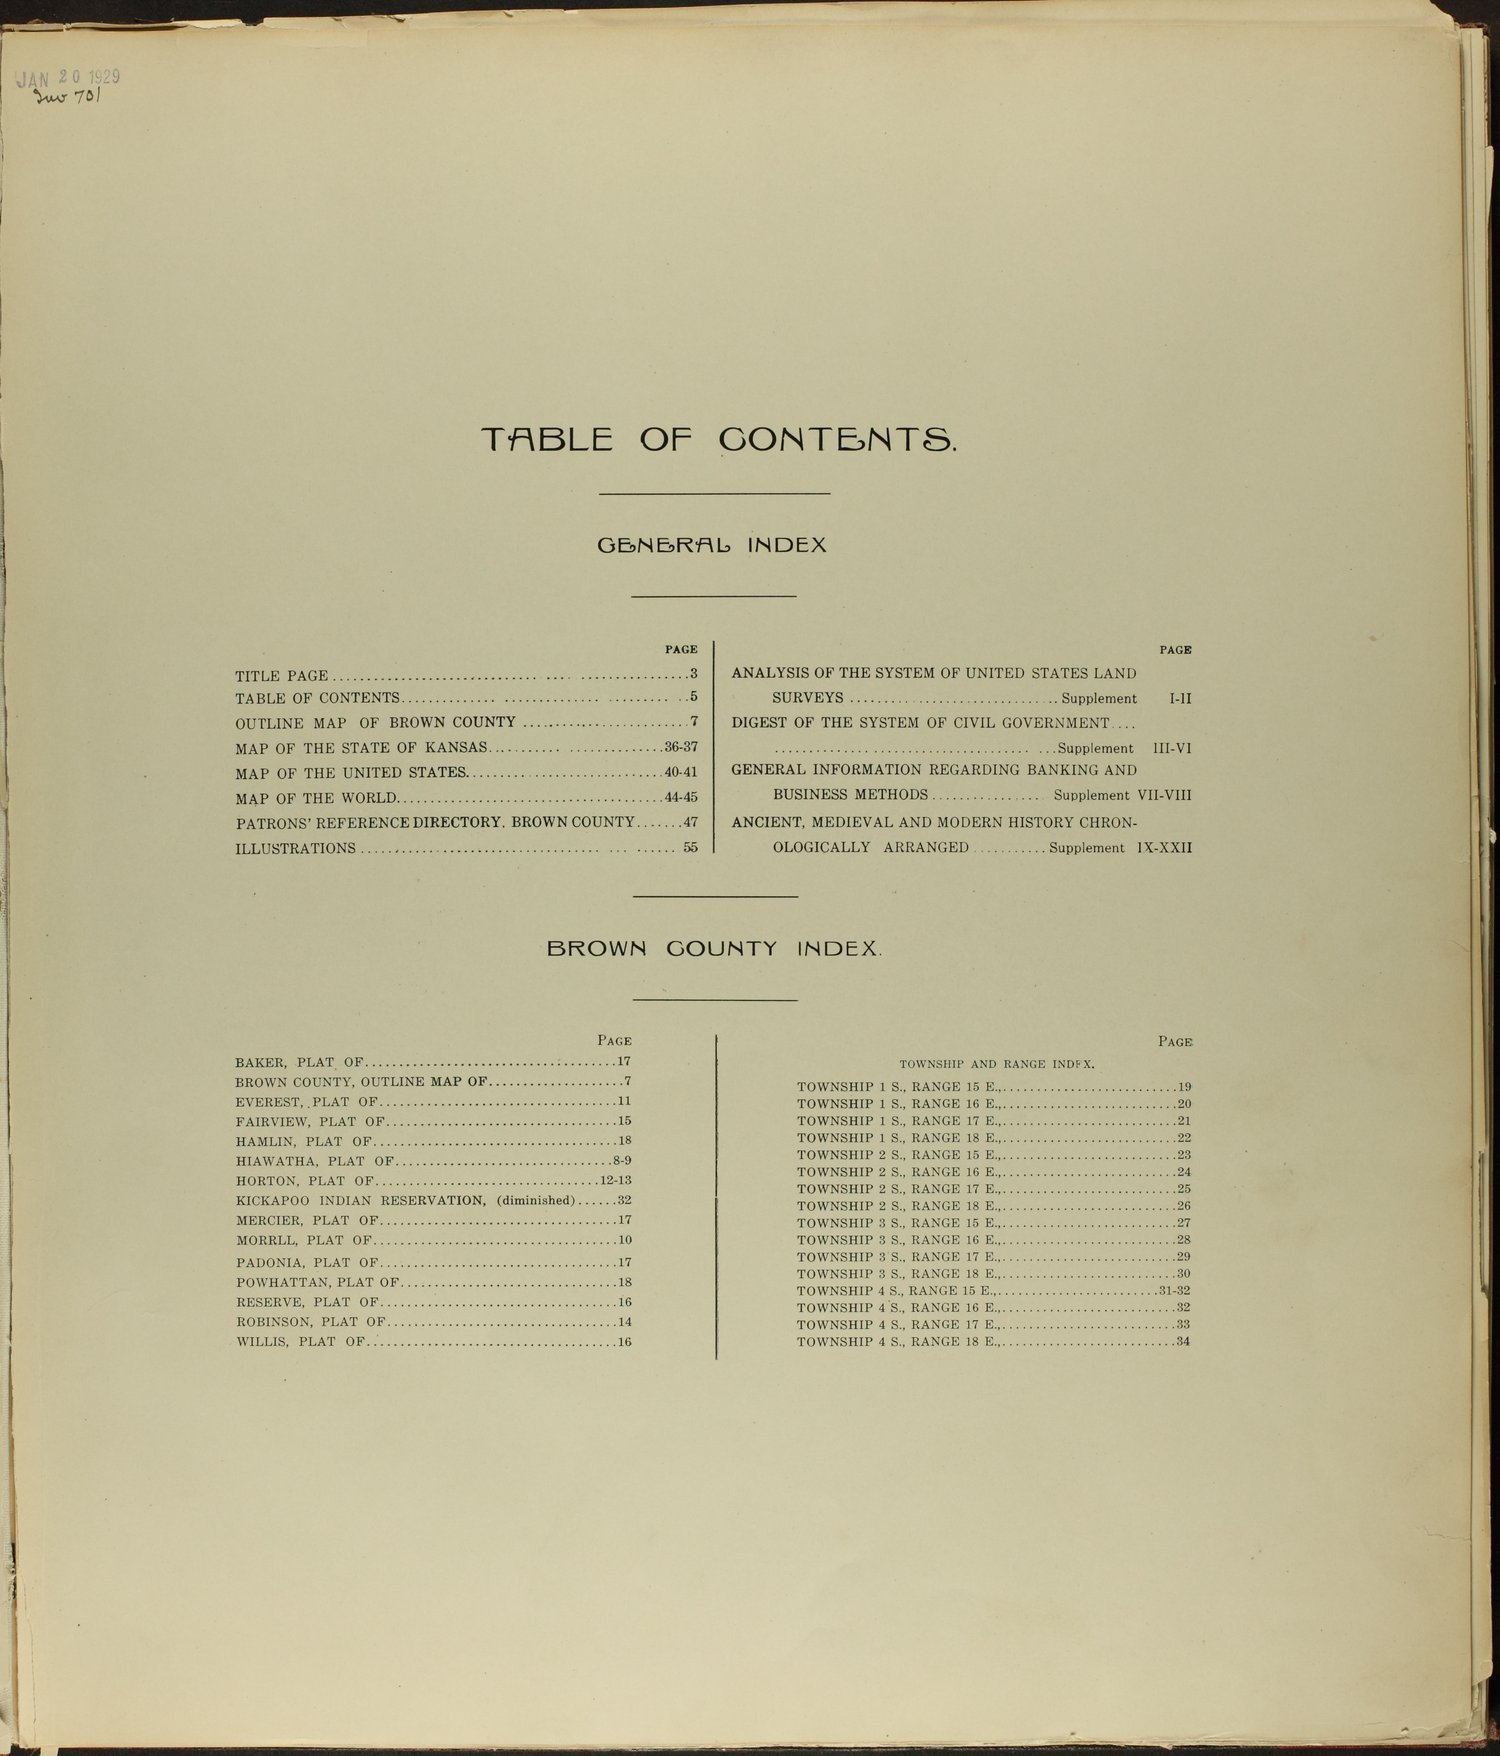 Standard atlas of Brown County, Kansas - Table of Contents